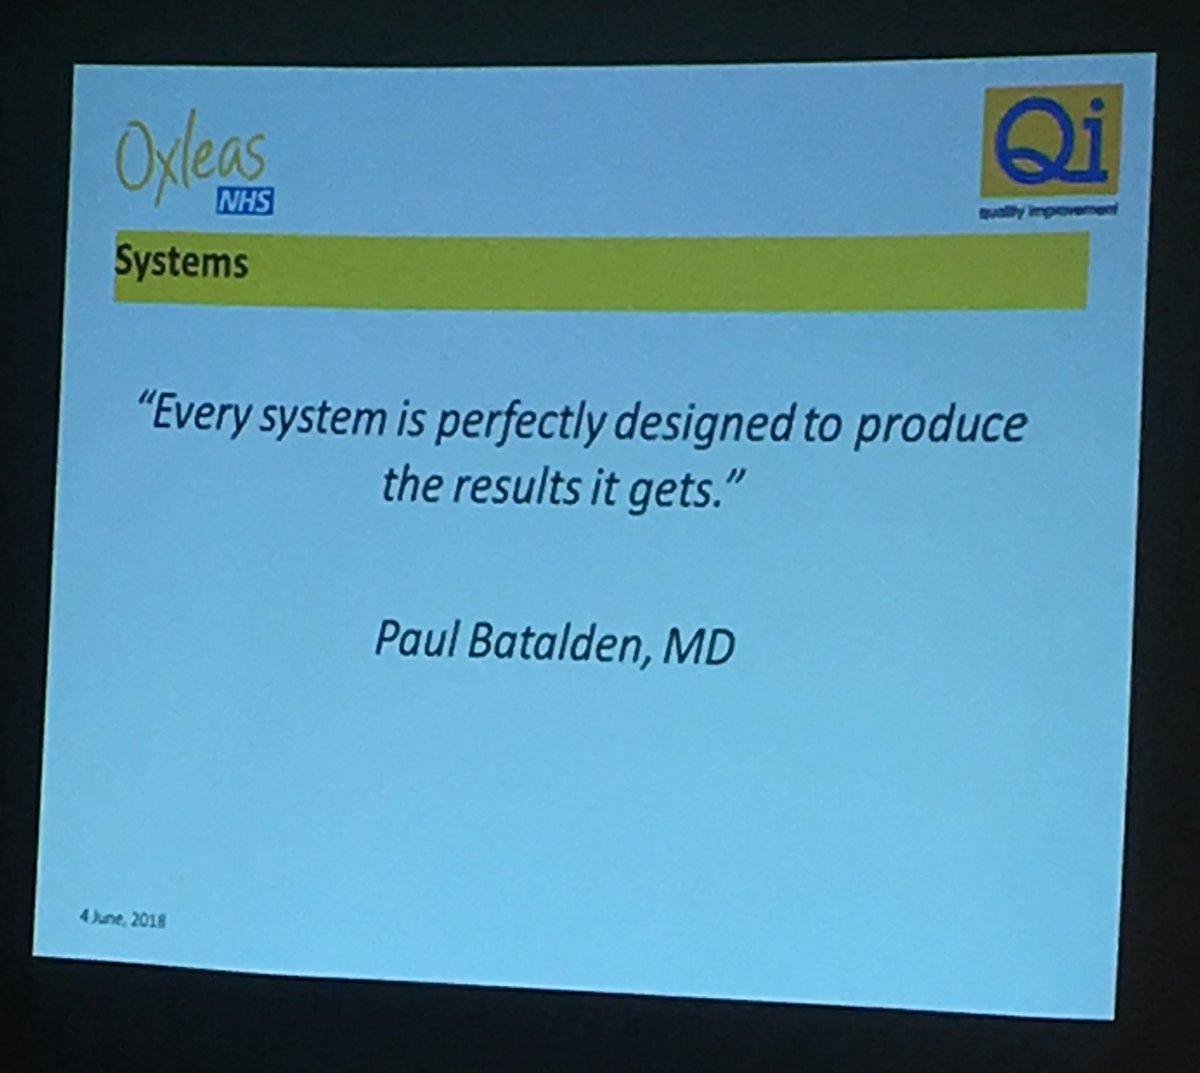 Victoria Saffin On Twitter Every System Is Perfectly Designed To Produce The Results It Gets So Very True Oxleasqi Oxleasnhs Slam Qi Rachaelleaton Pollyragoobar Qi Qualityimprovement Https T Co T9q9su5m6e